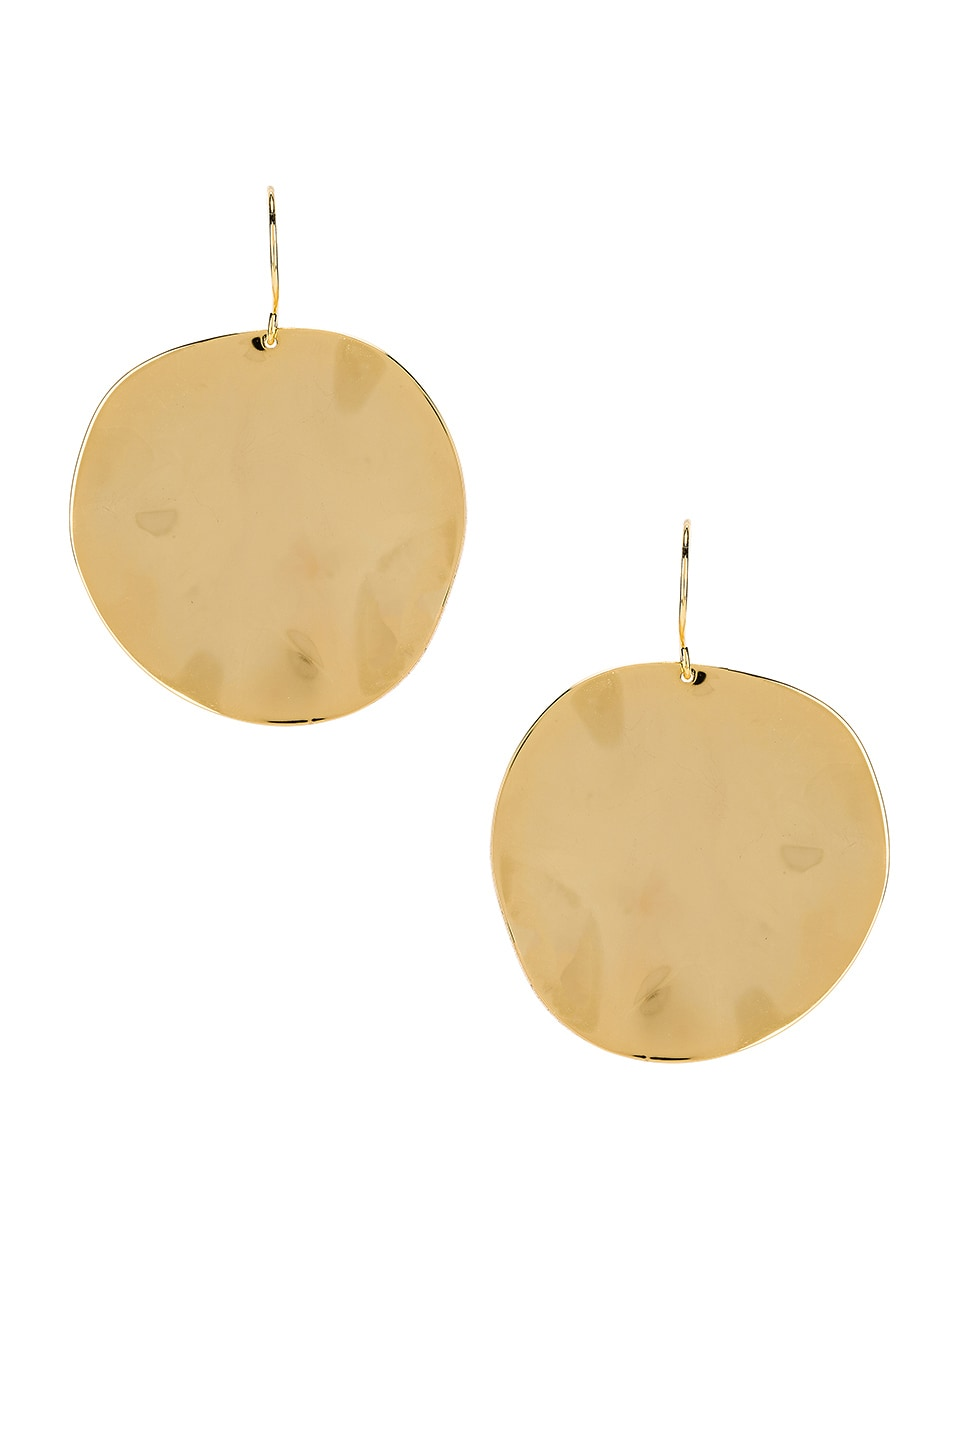 gorjana Chloe Large Earrings in Gold